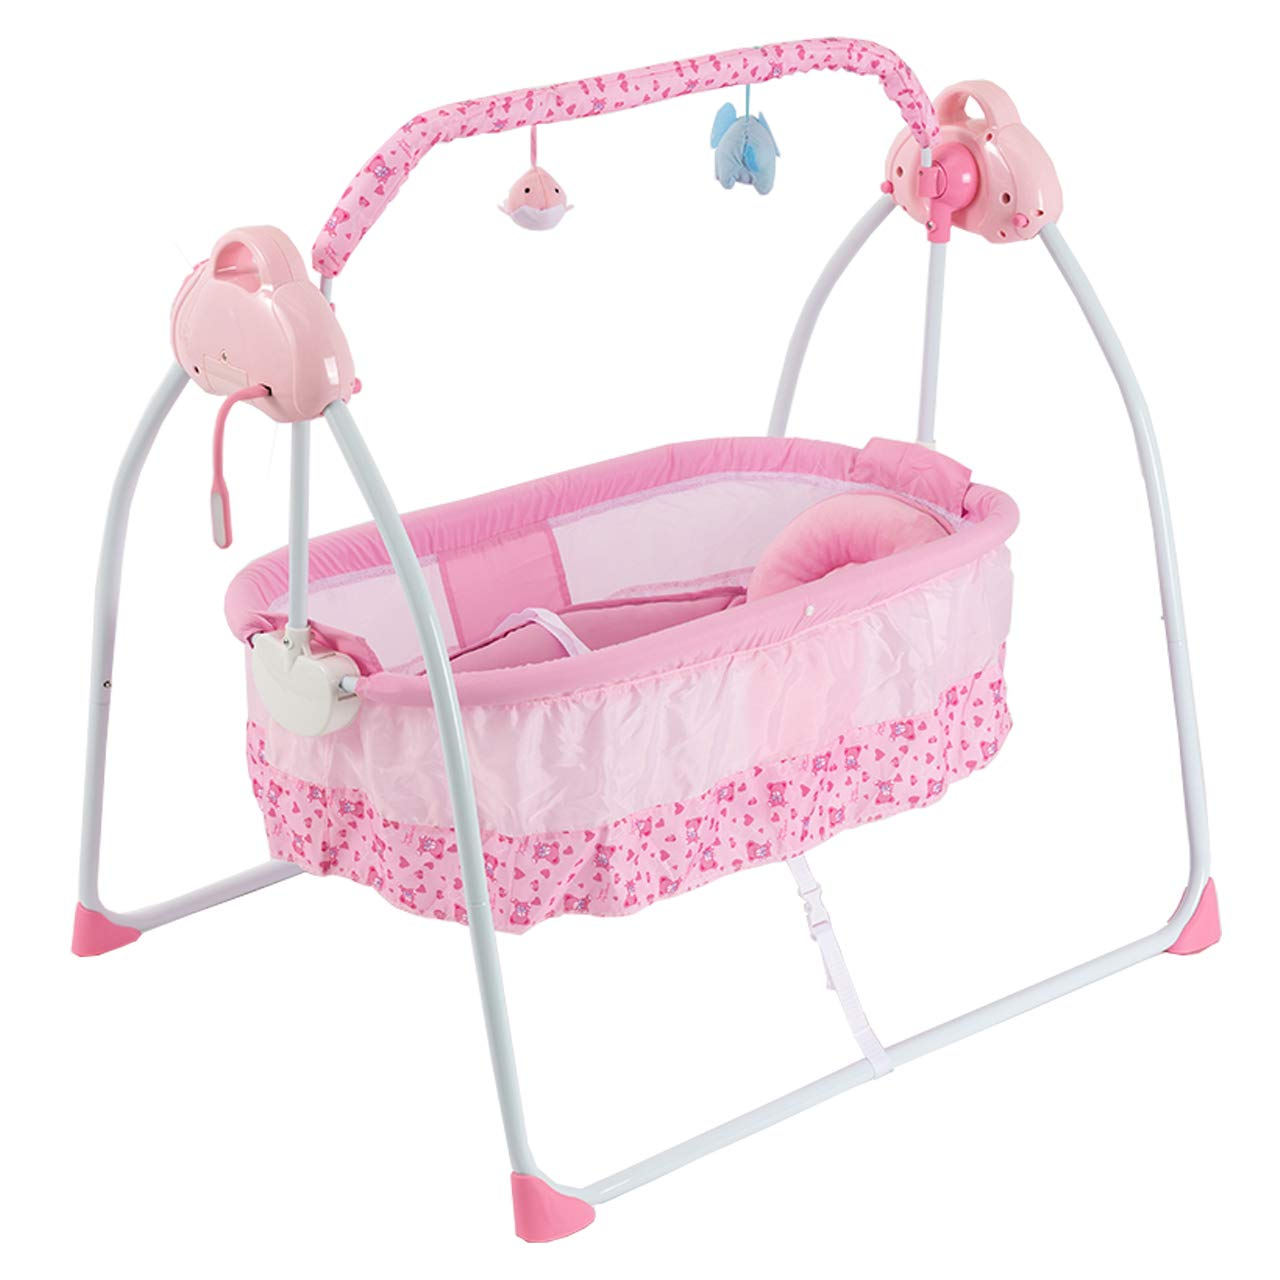 Baby Bassinet-Portable Crib-Bedside Bassinet